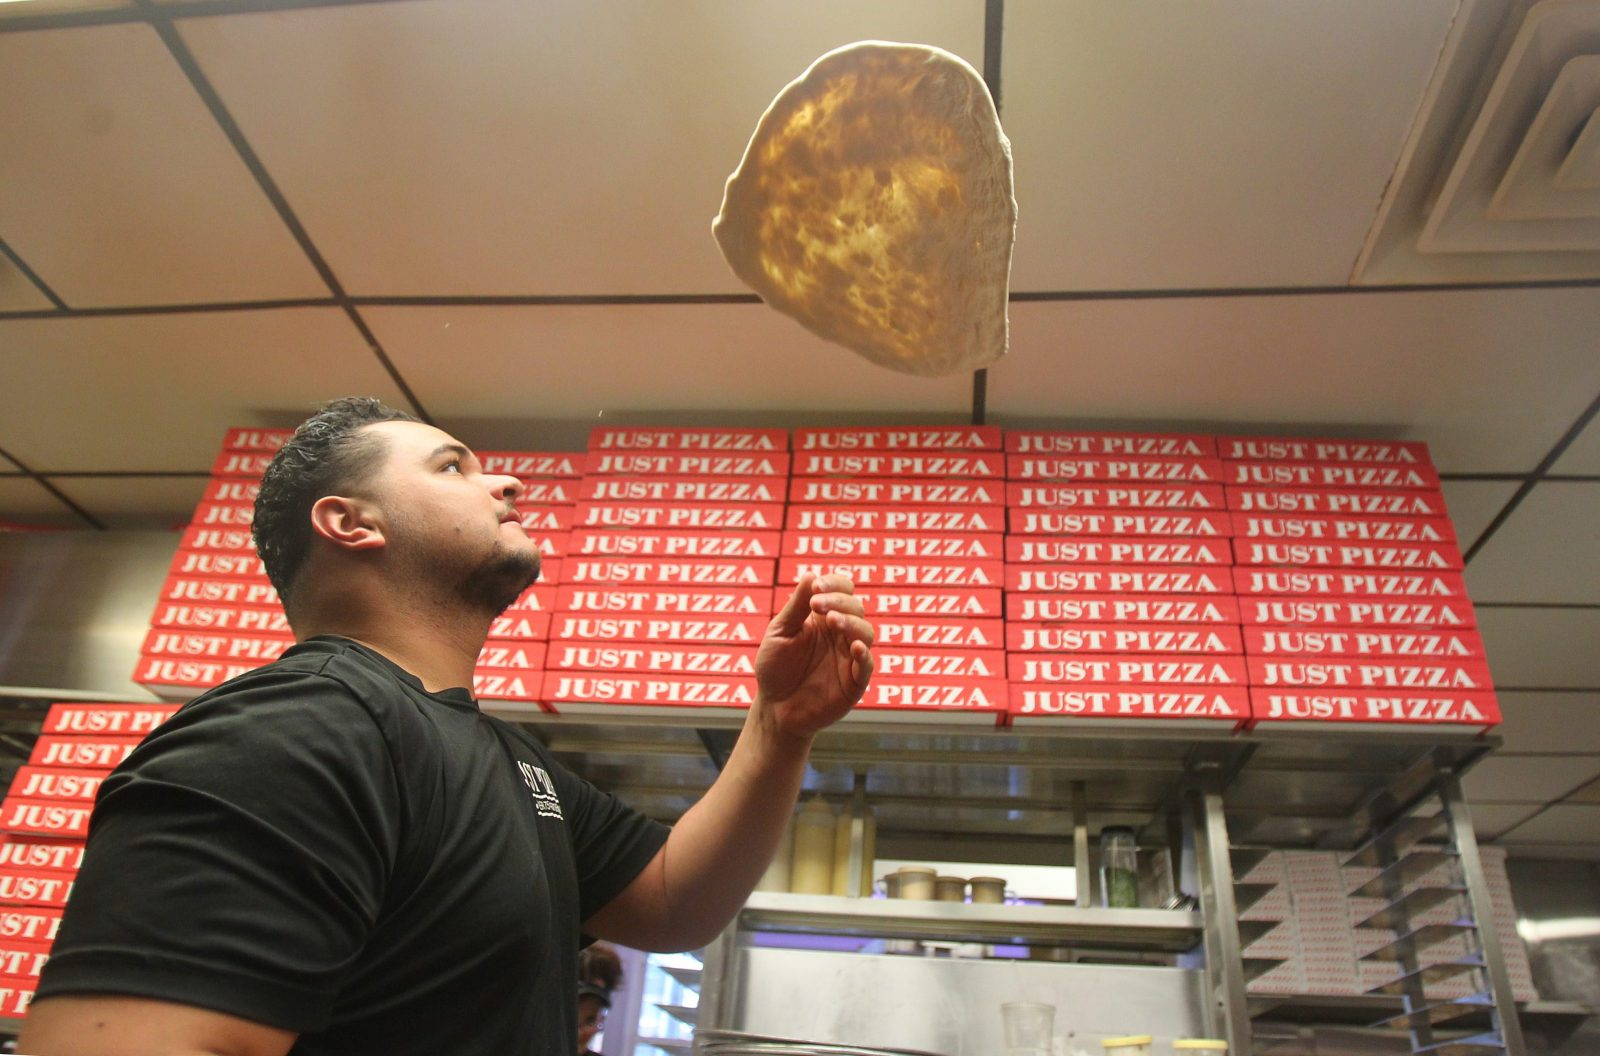 Just Pizza hopes a new drive-though option will send slice sales flying. (Mark Mulville/Buffalo News)